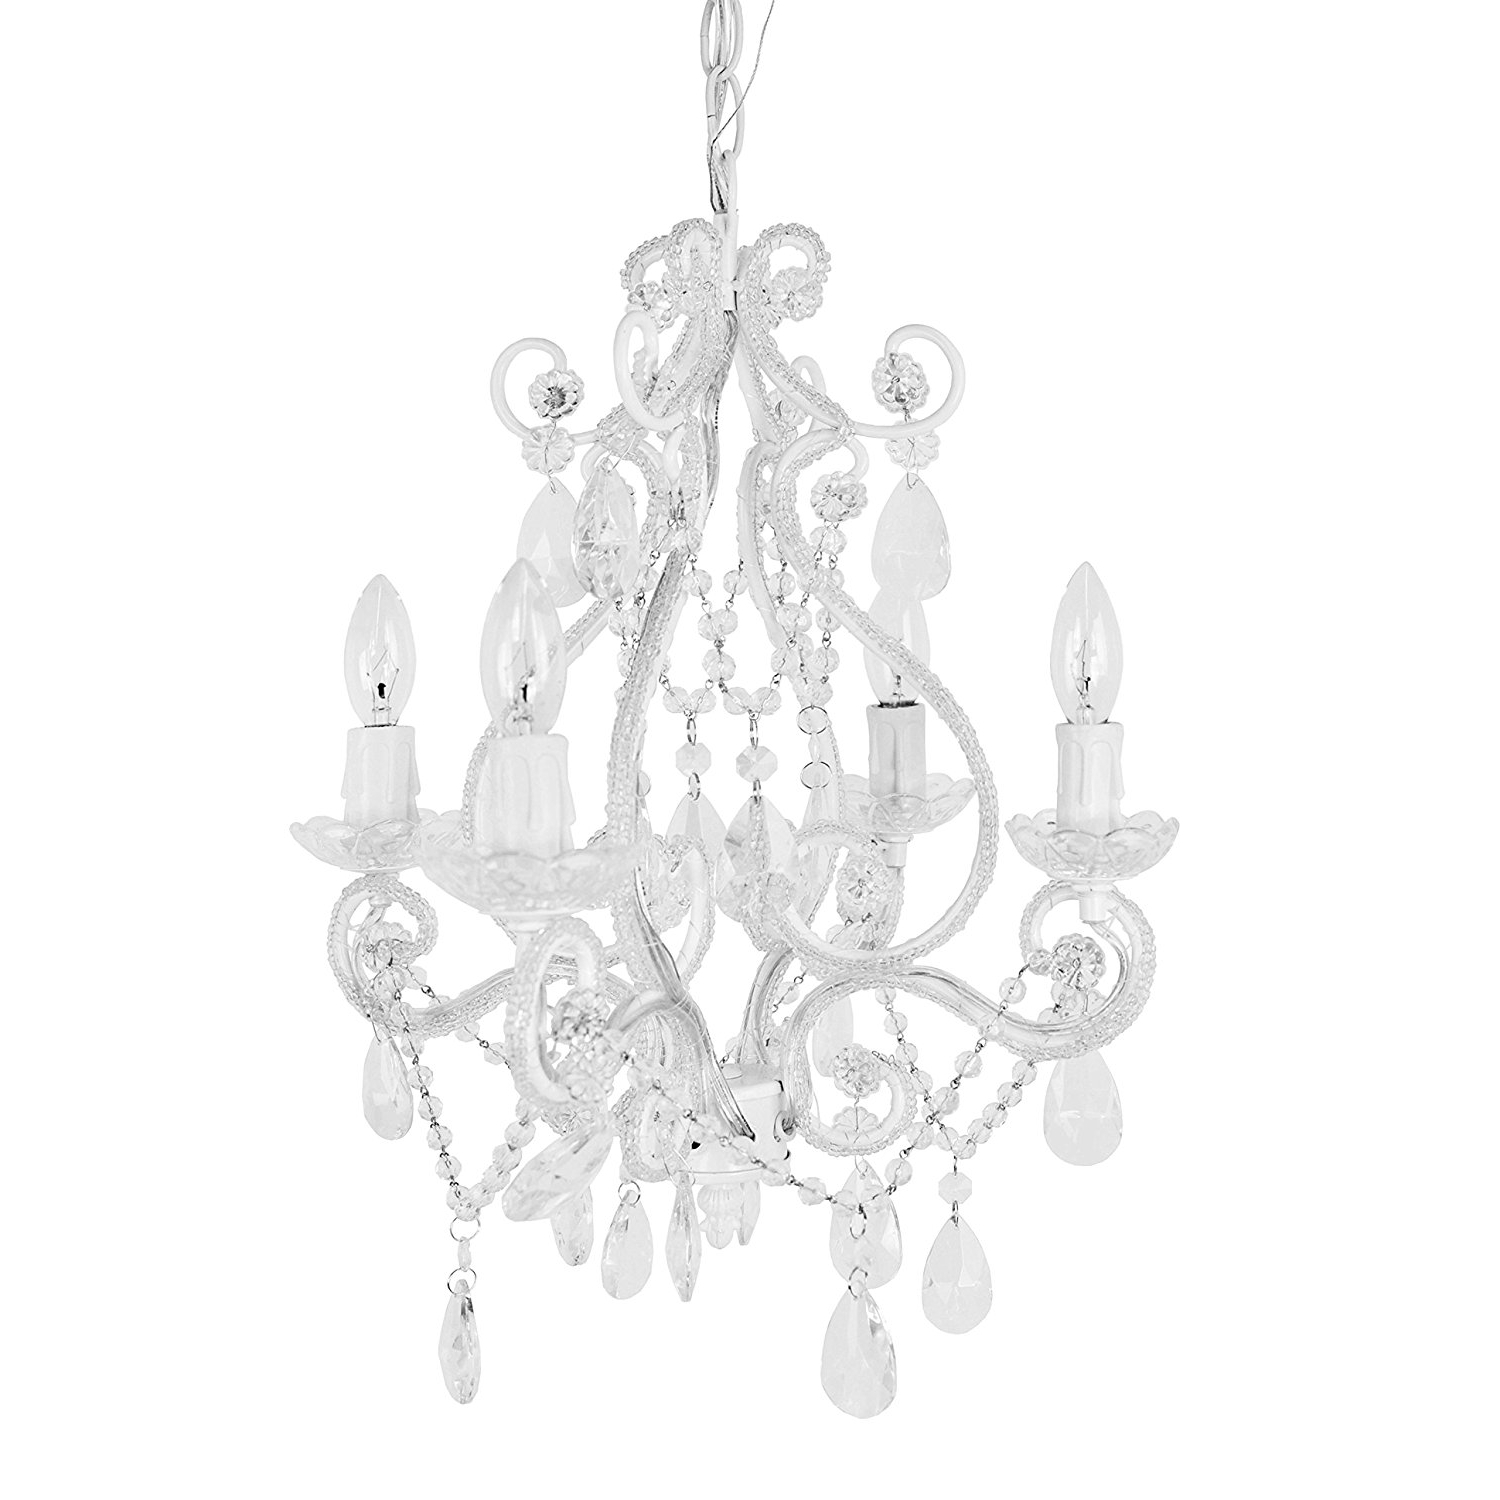 Widely Used Amazon : Tadpoles 4 Bulb Vintage Plug In Mini Chandelier, White Inside White Chandelier (View 15 of 15)